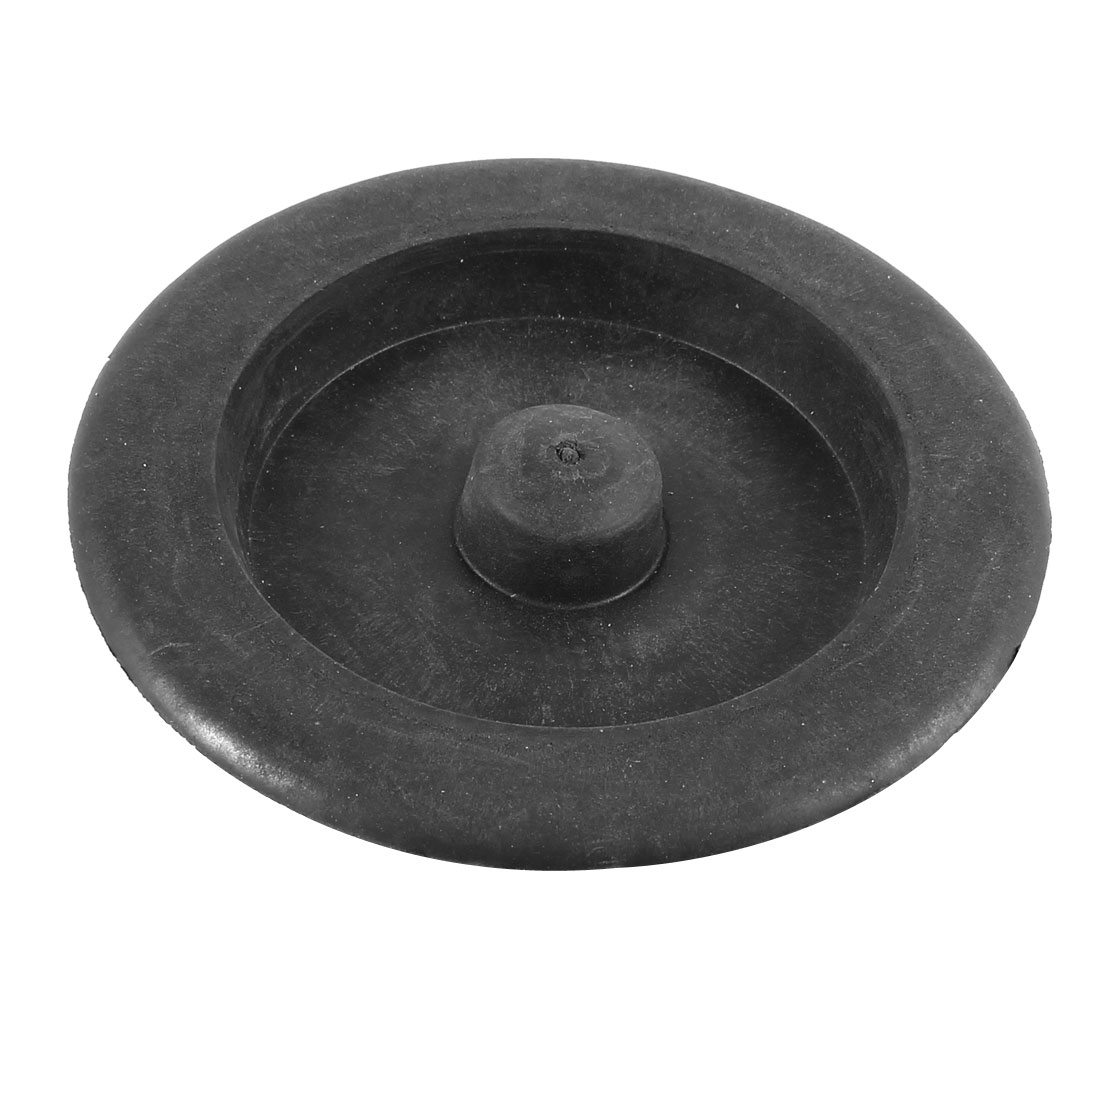 "Bathroom Kitchen Black 3.6"" Diameter Rubber Plug Basin Drain Stopper"